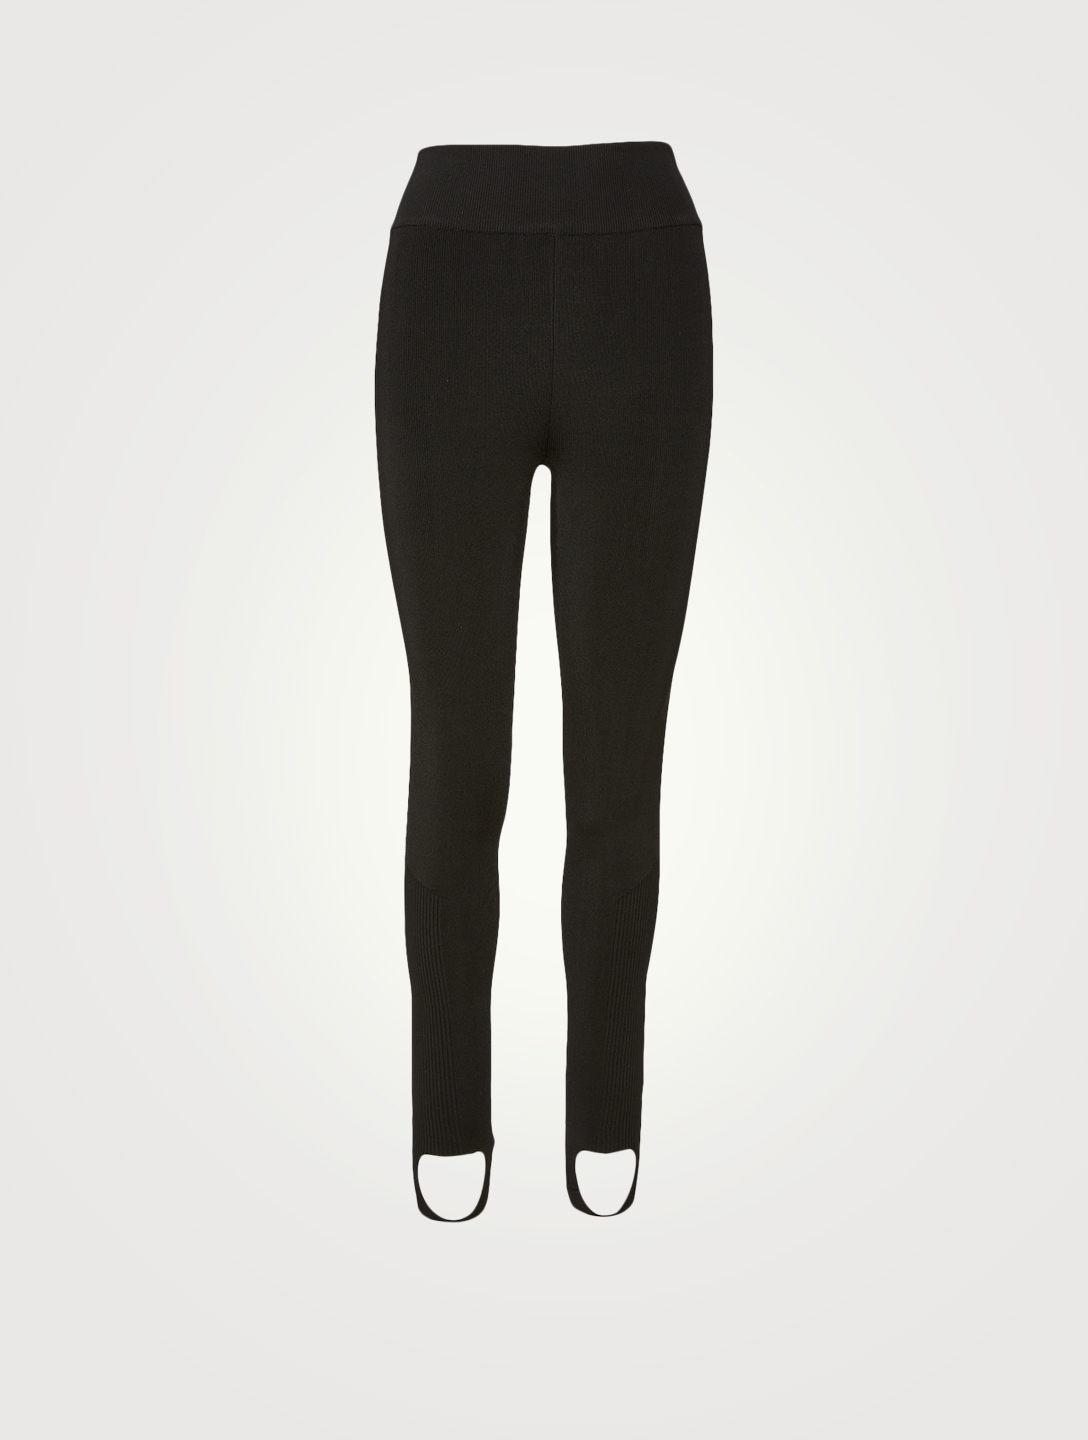 VICTORIA BECKHAM High-Waisted Leggings Women's Black